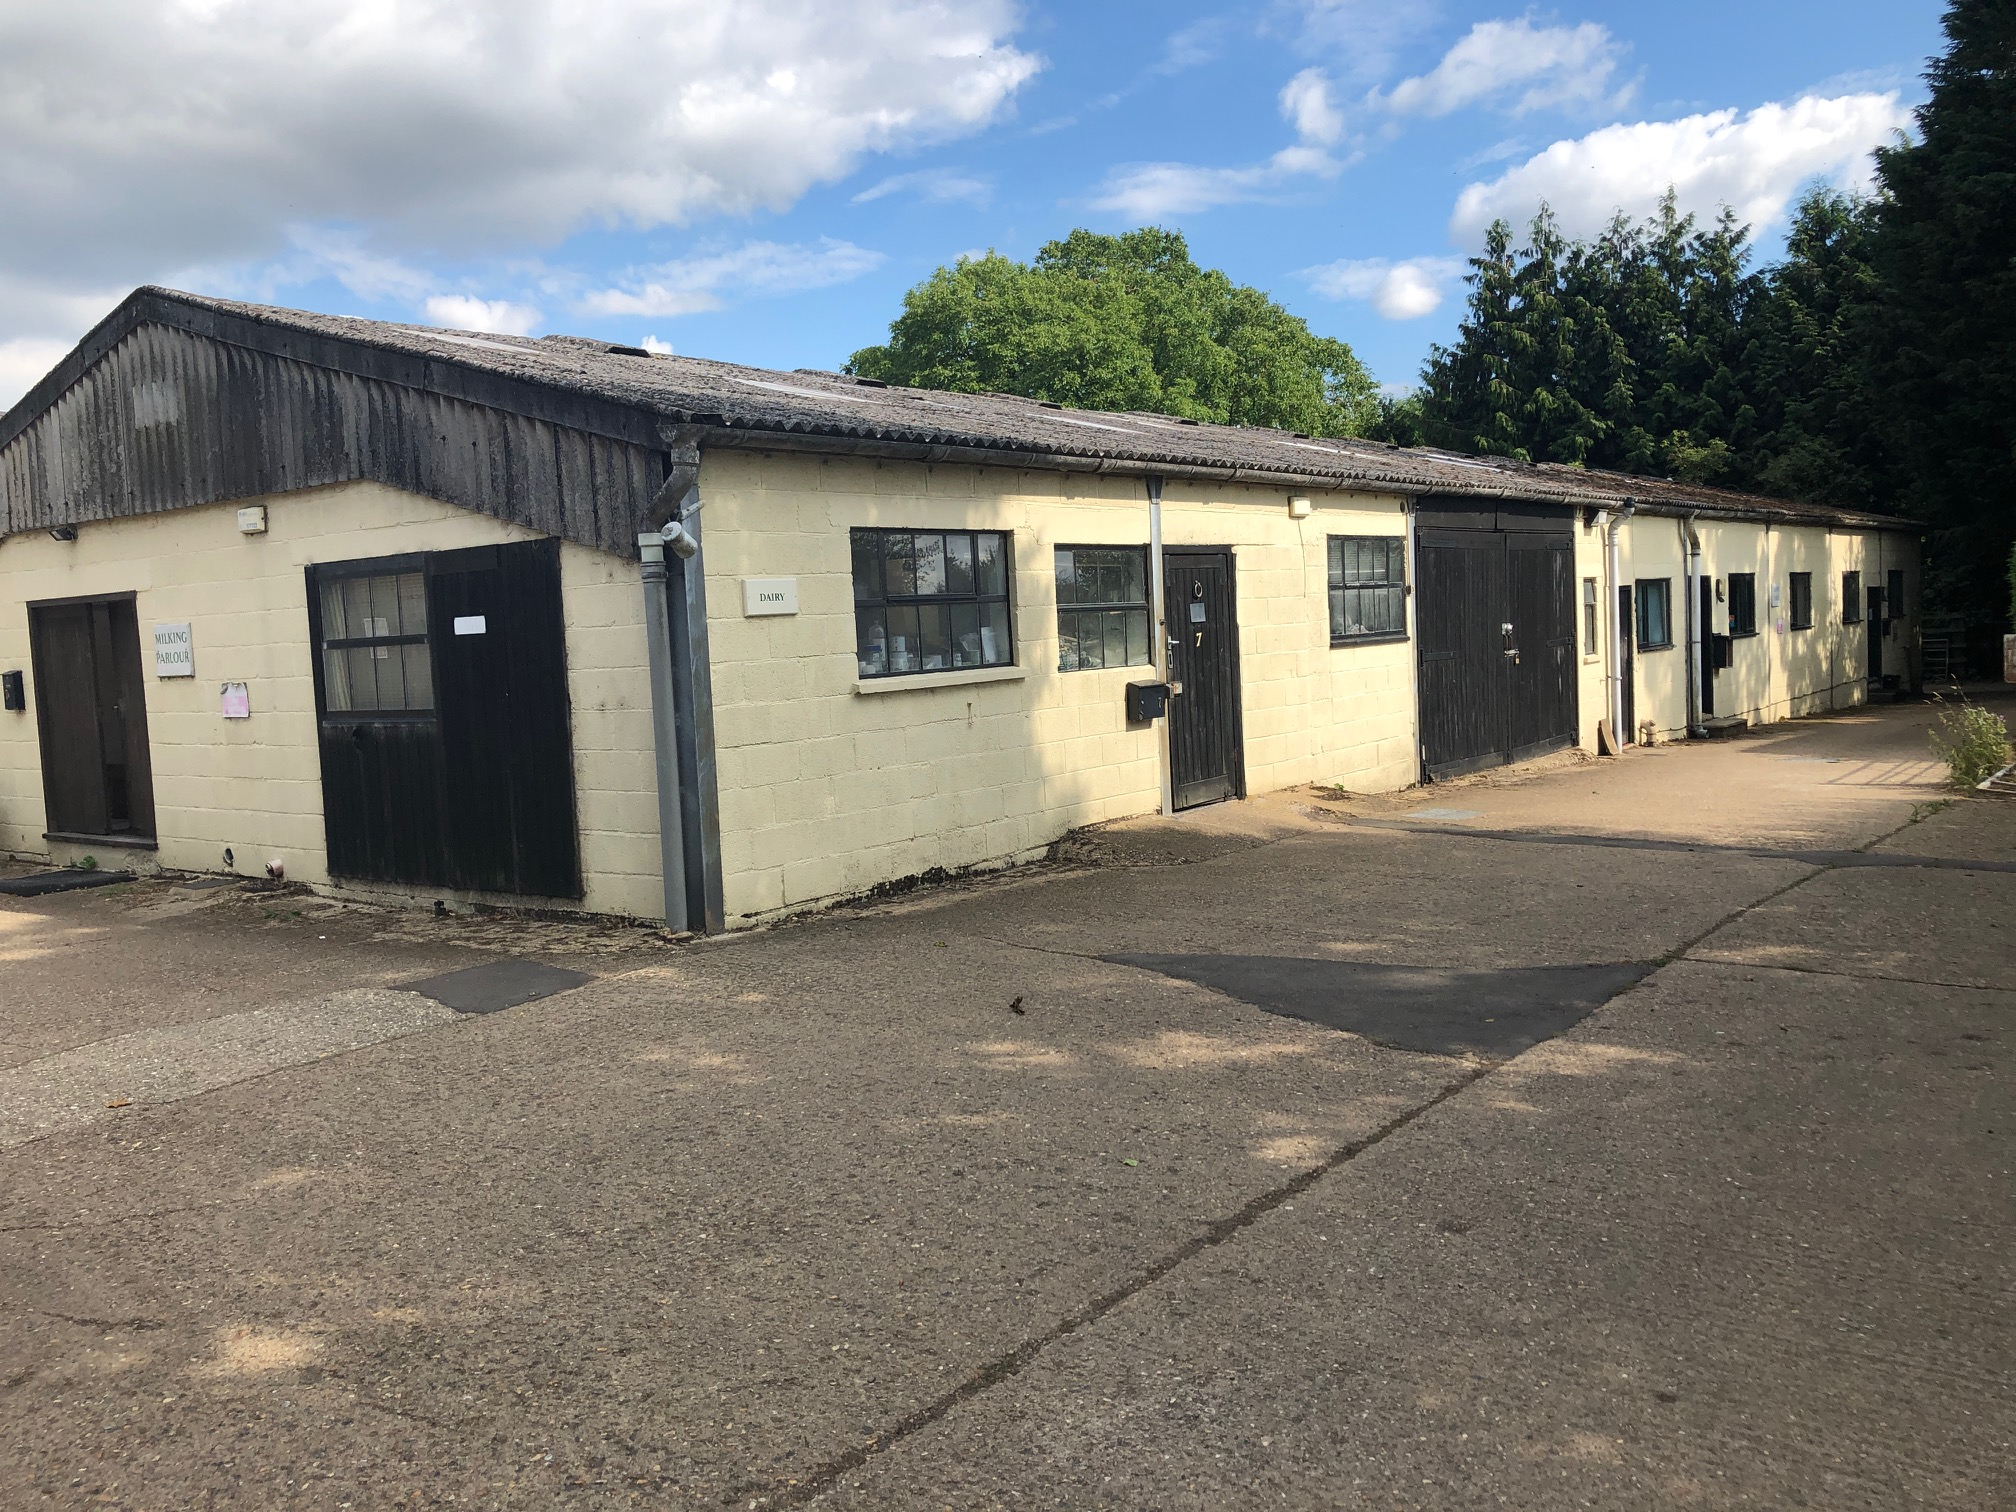 0 bed Office for rent in Henley-On-Thames. From Hicks Baker